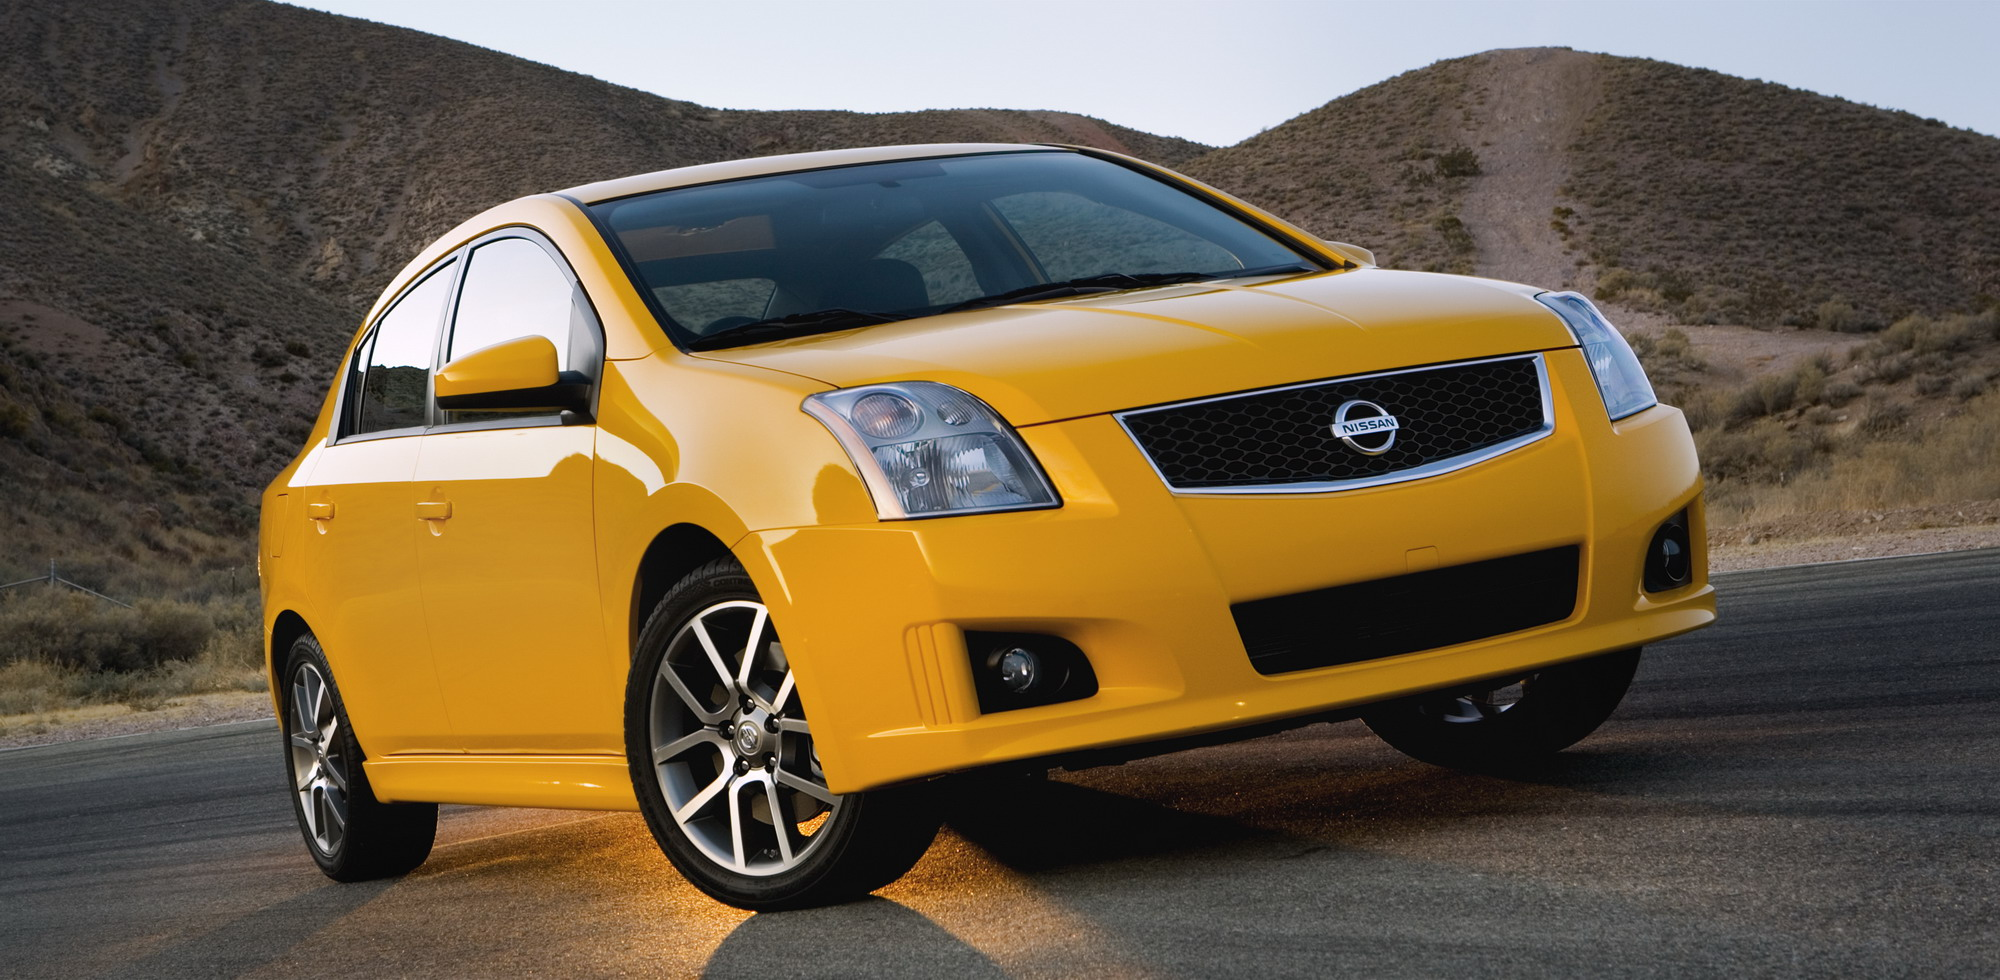 2011 nissan sentra se r review gallery top speed. Black Bedroom Furniture Sets. Home Design Ideas